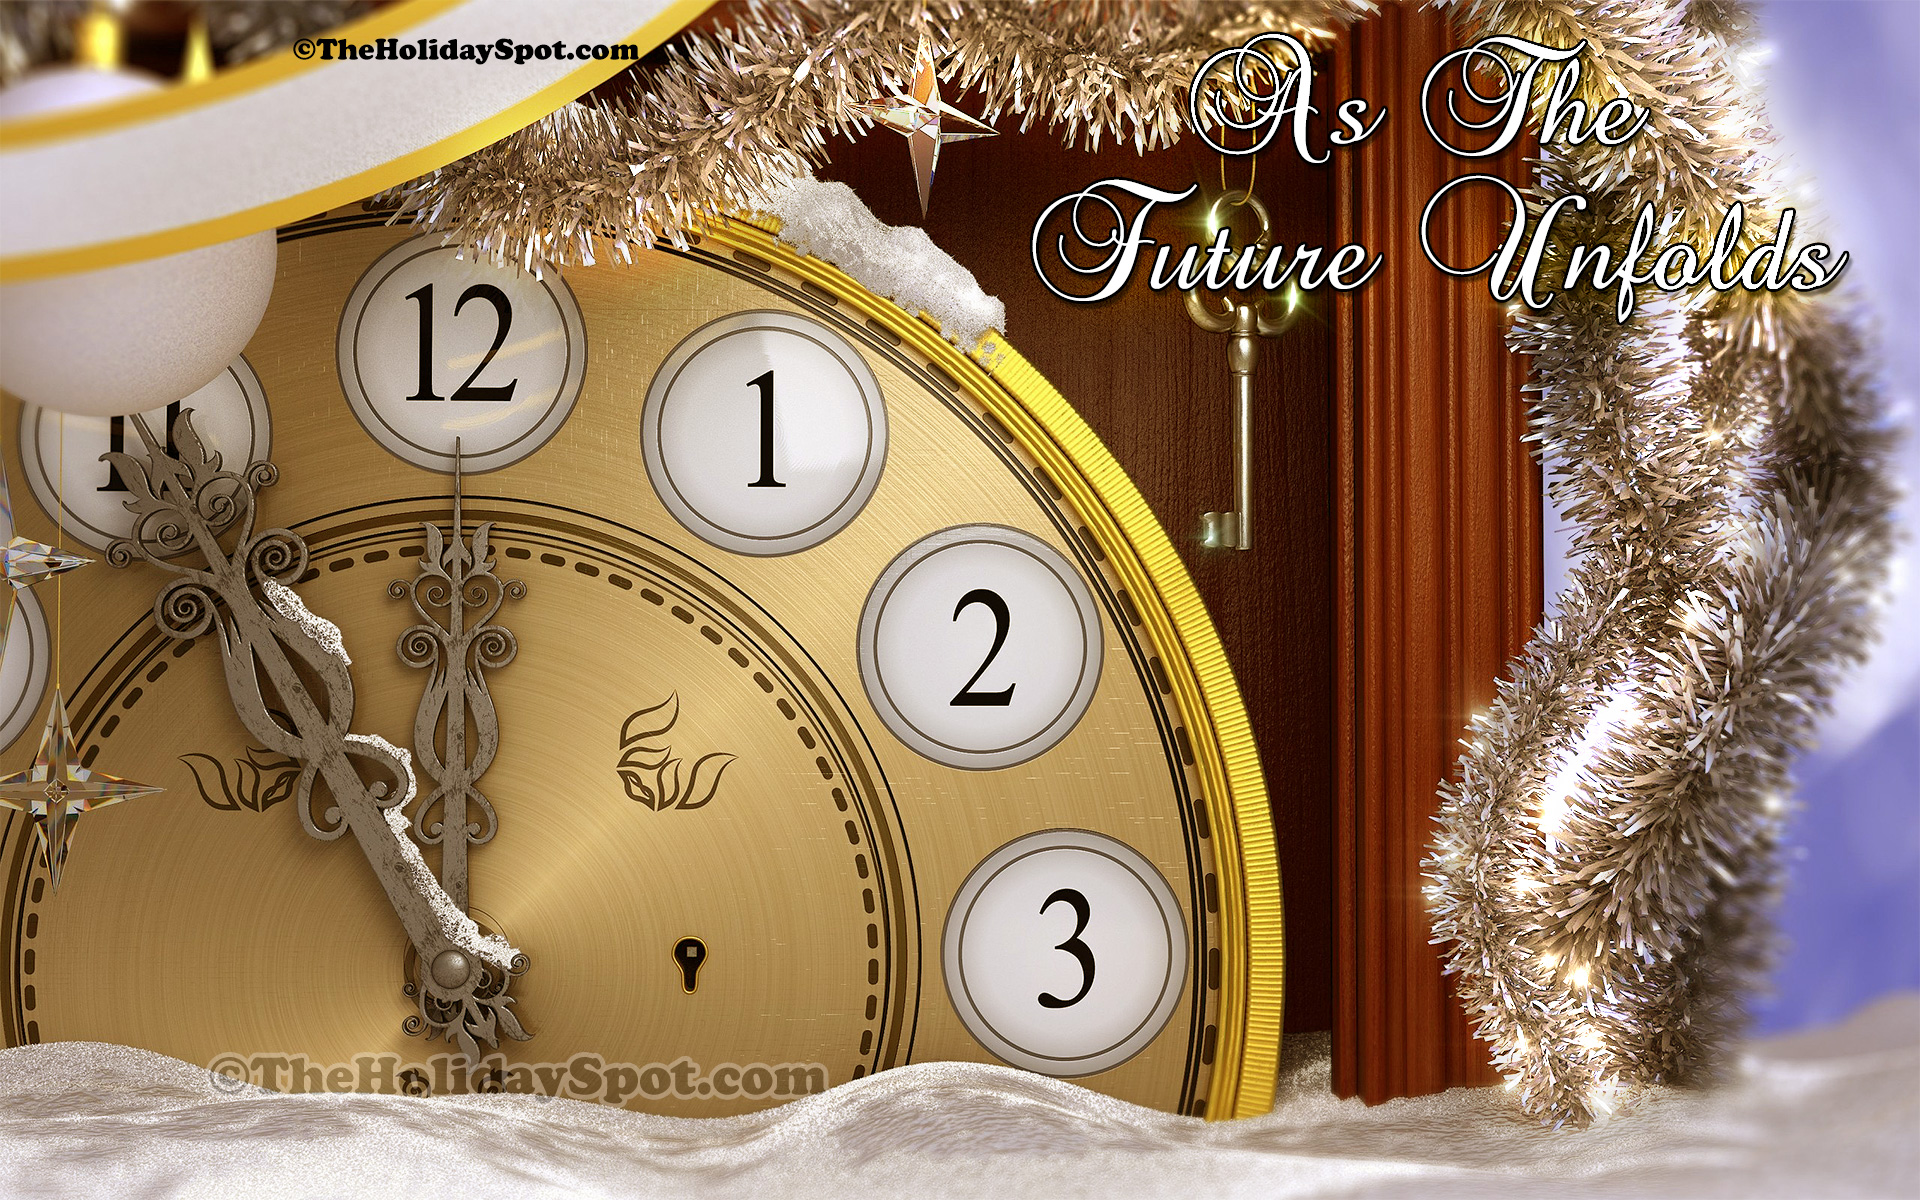 Download happy new year 2014 live wallpaper gallery happy new year 2014 live wallpaper voltagebd Gallery